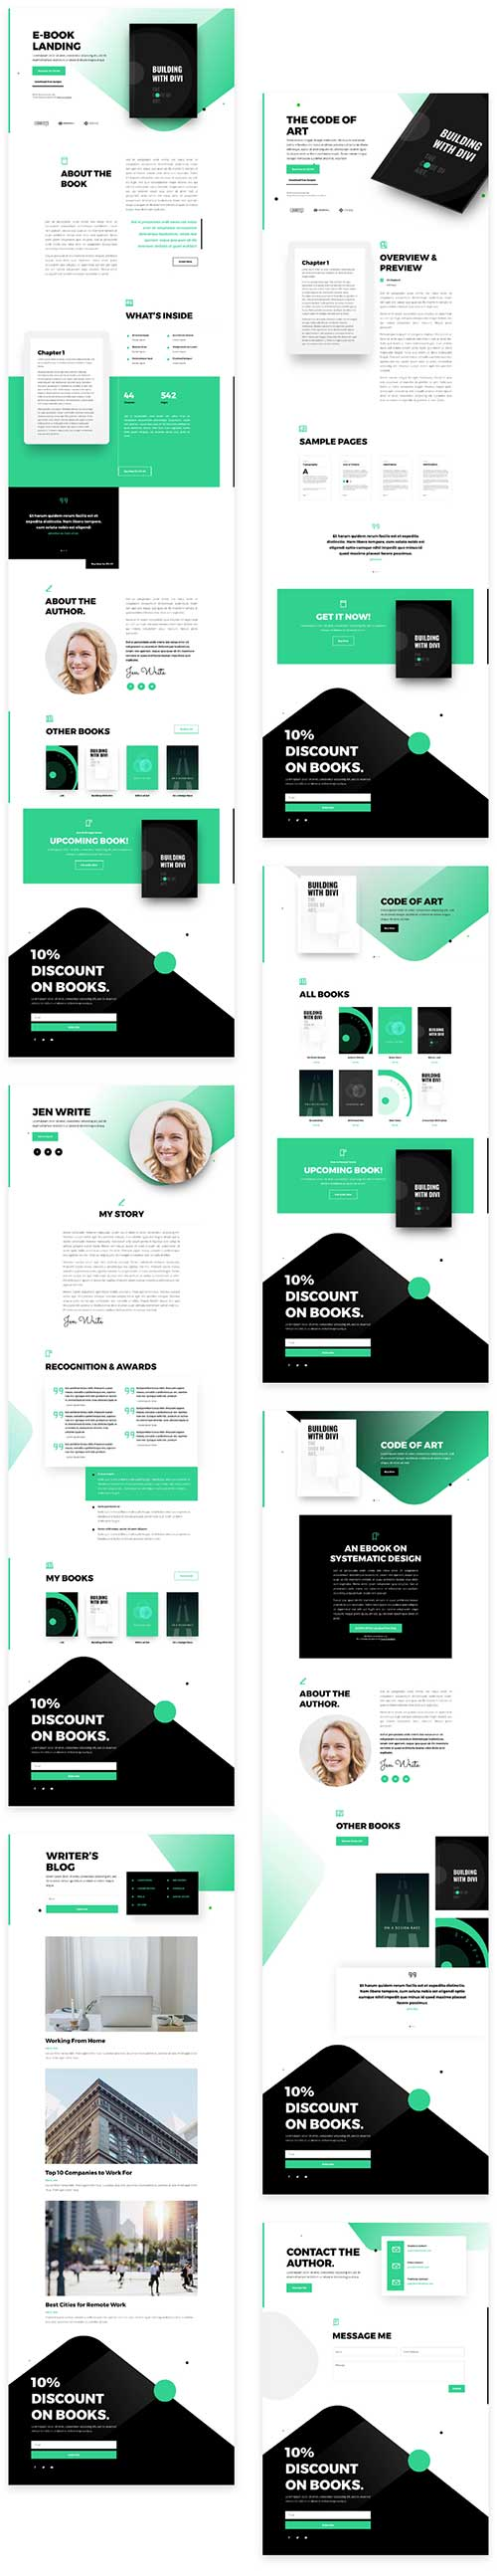 Free eBook Divi layout template